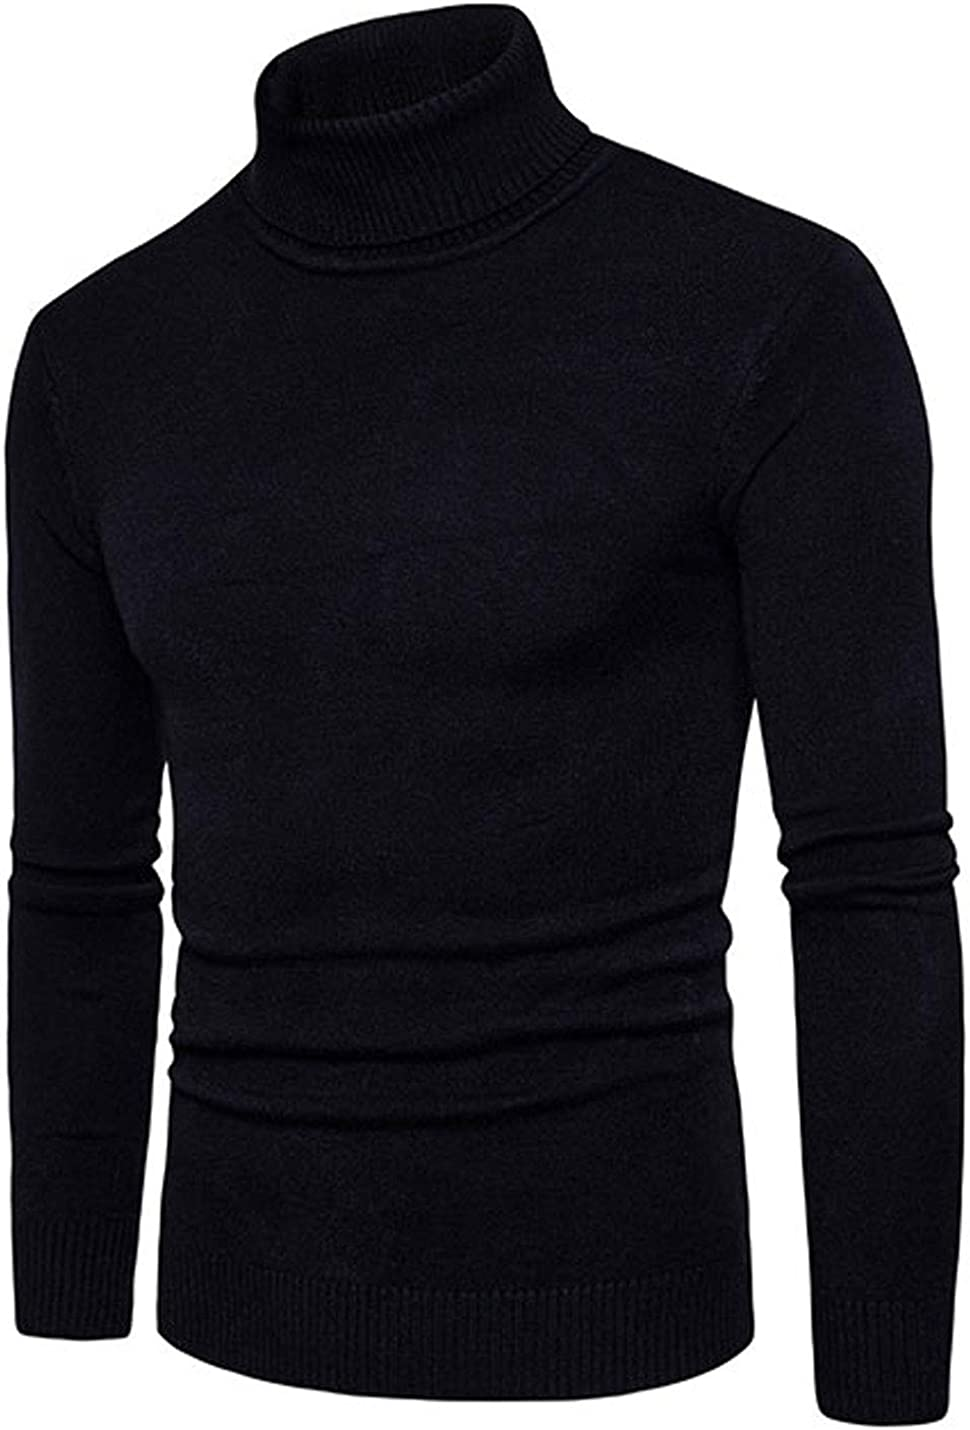 Flygo Men's Slim Fit High Neck Turtleneck Classic Long Sleeve Knitted Pullover Sweaters